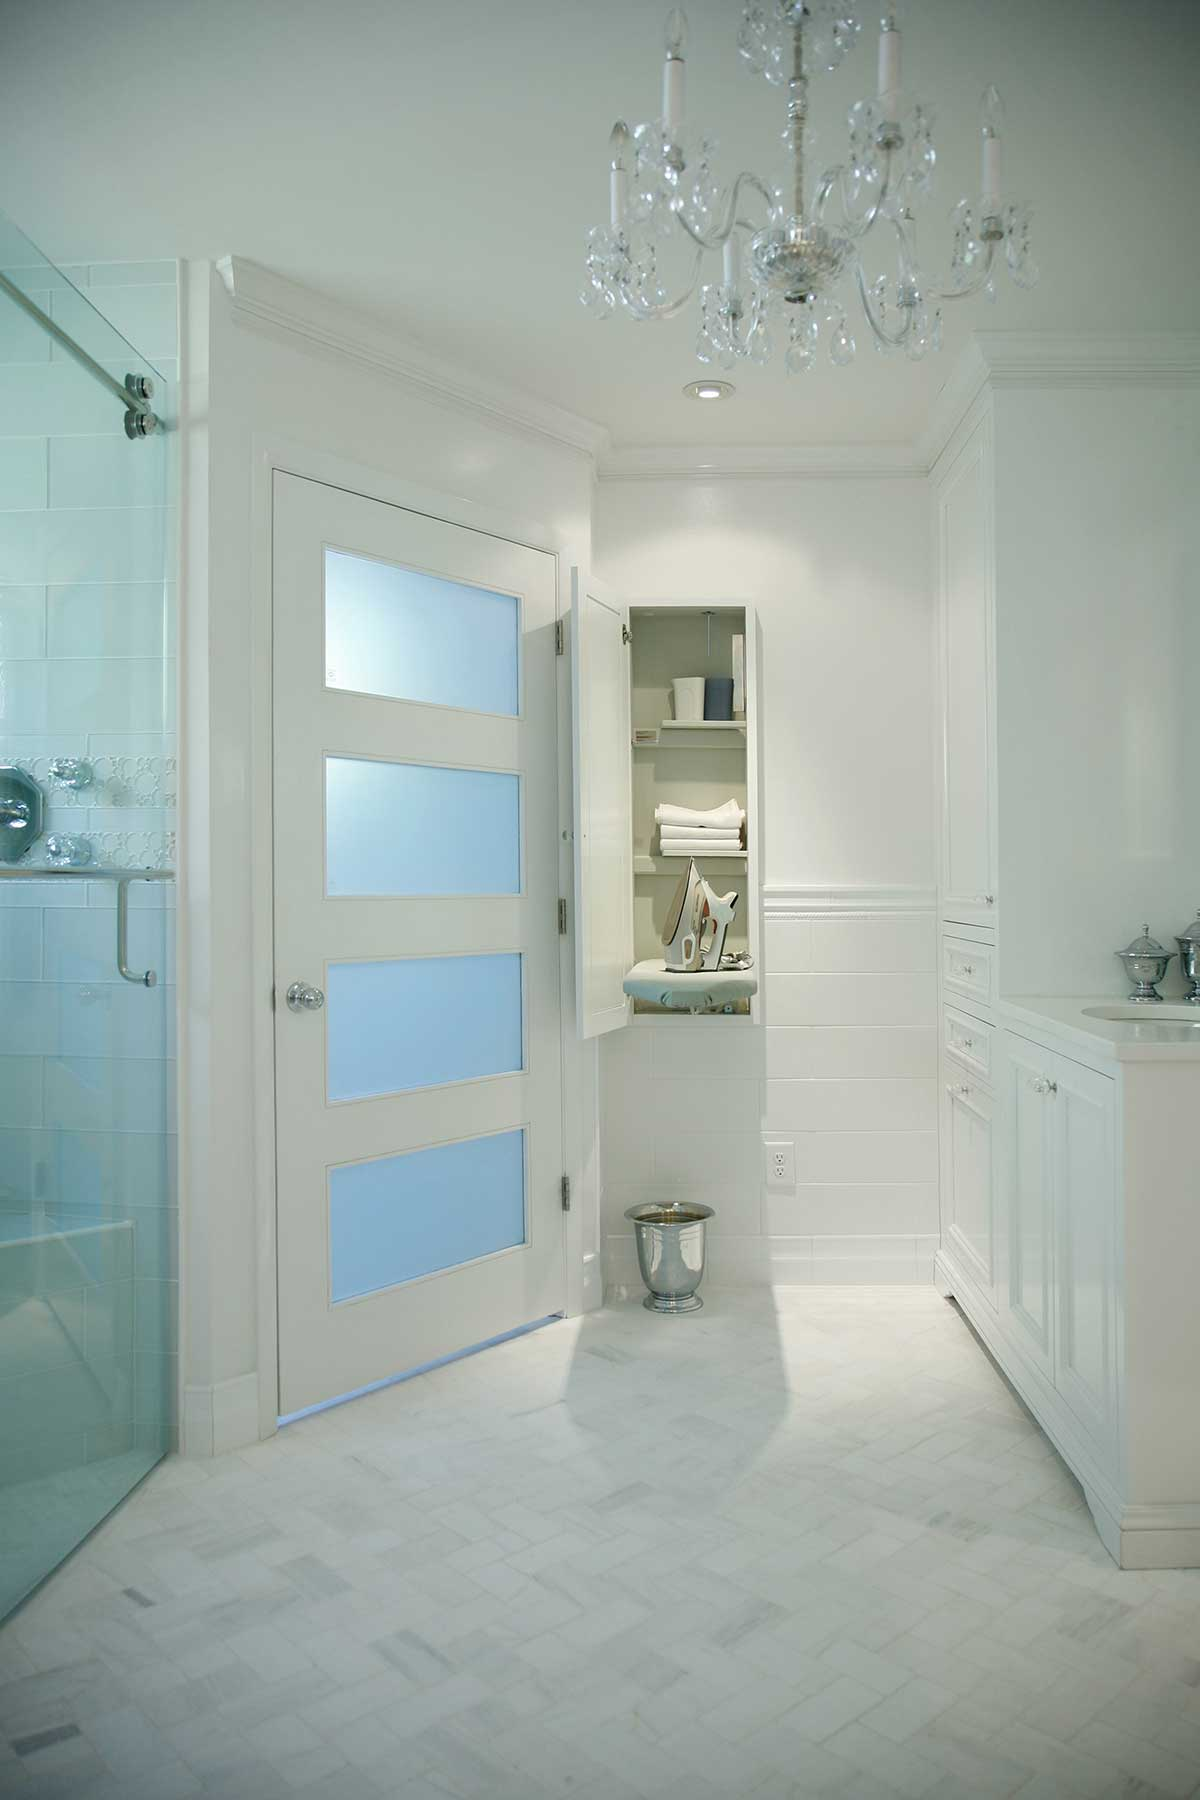 View of bathroom cabinets